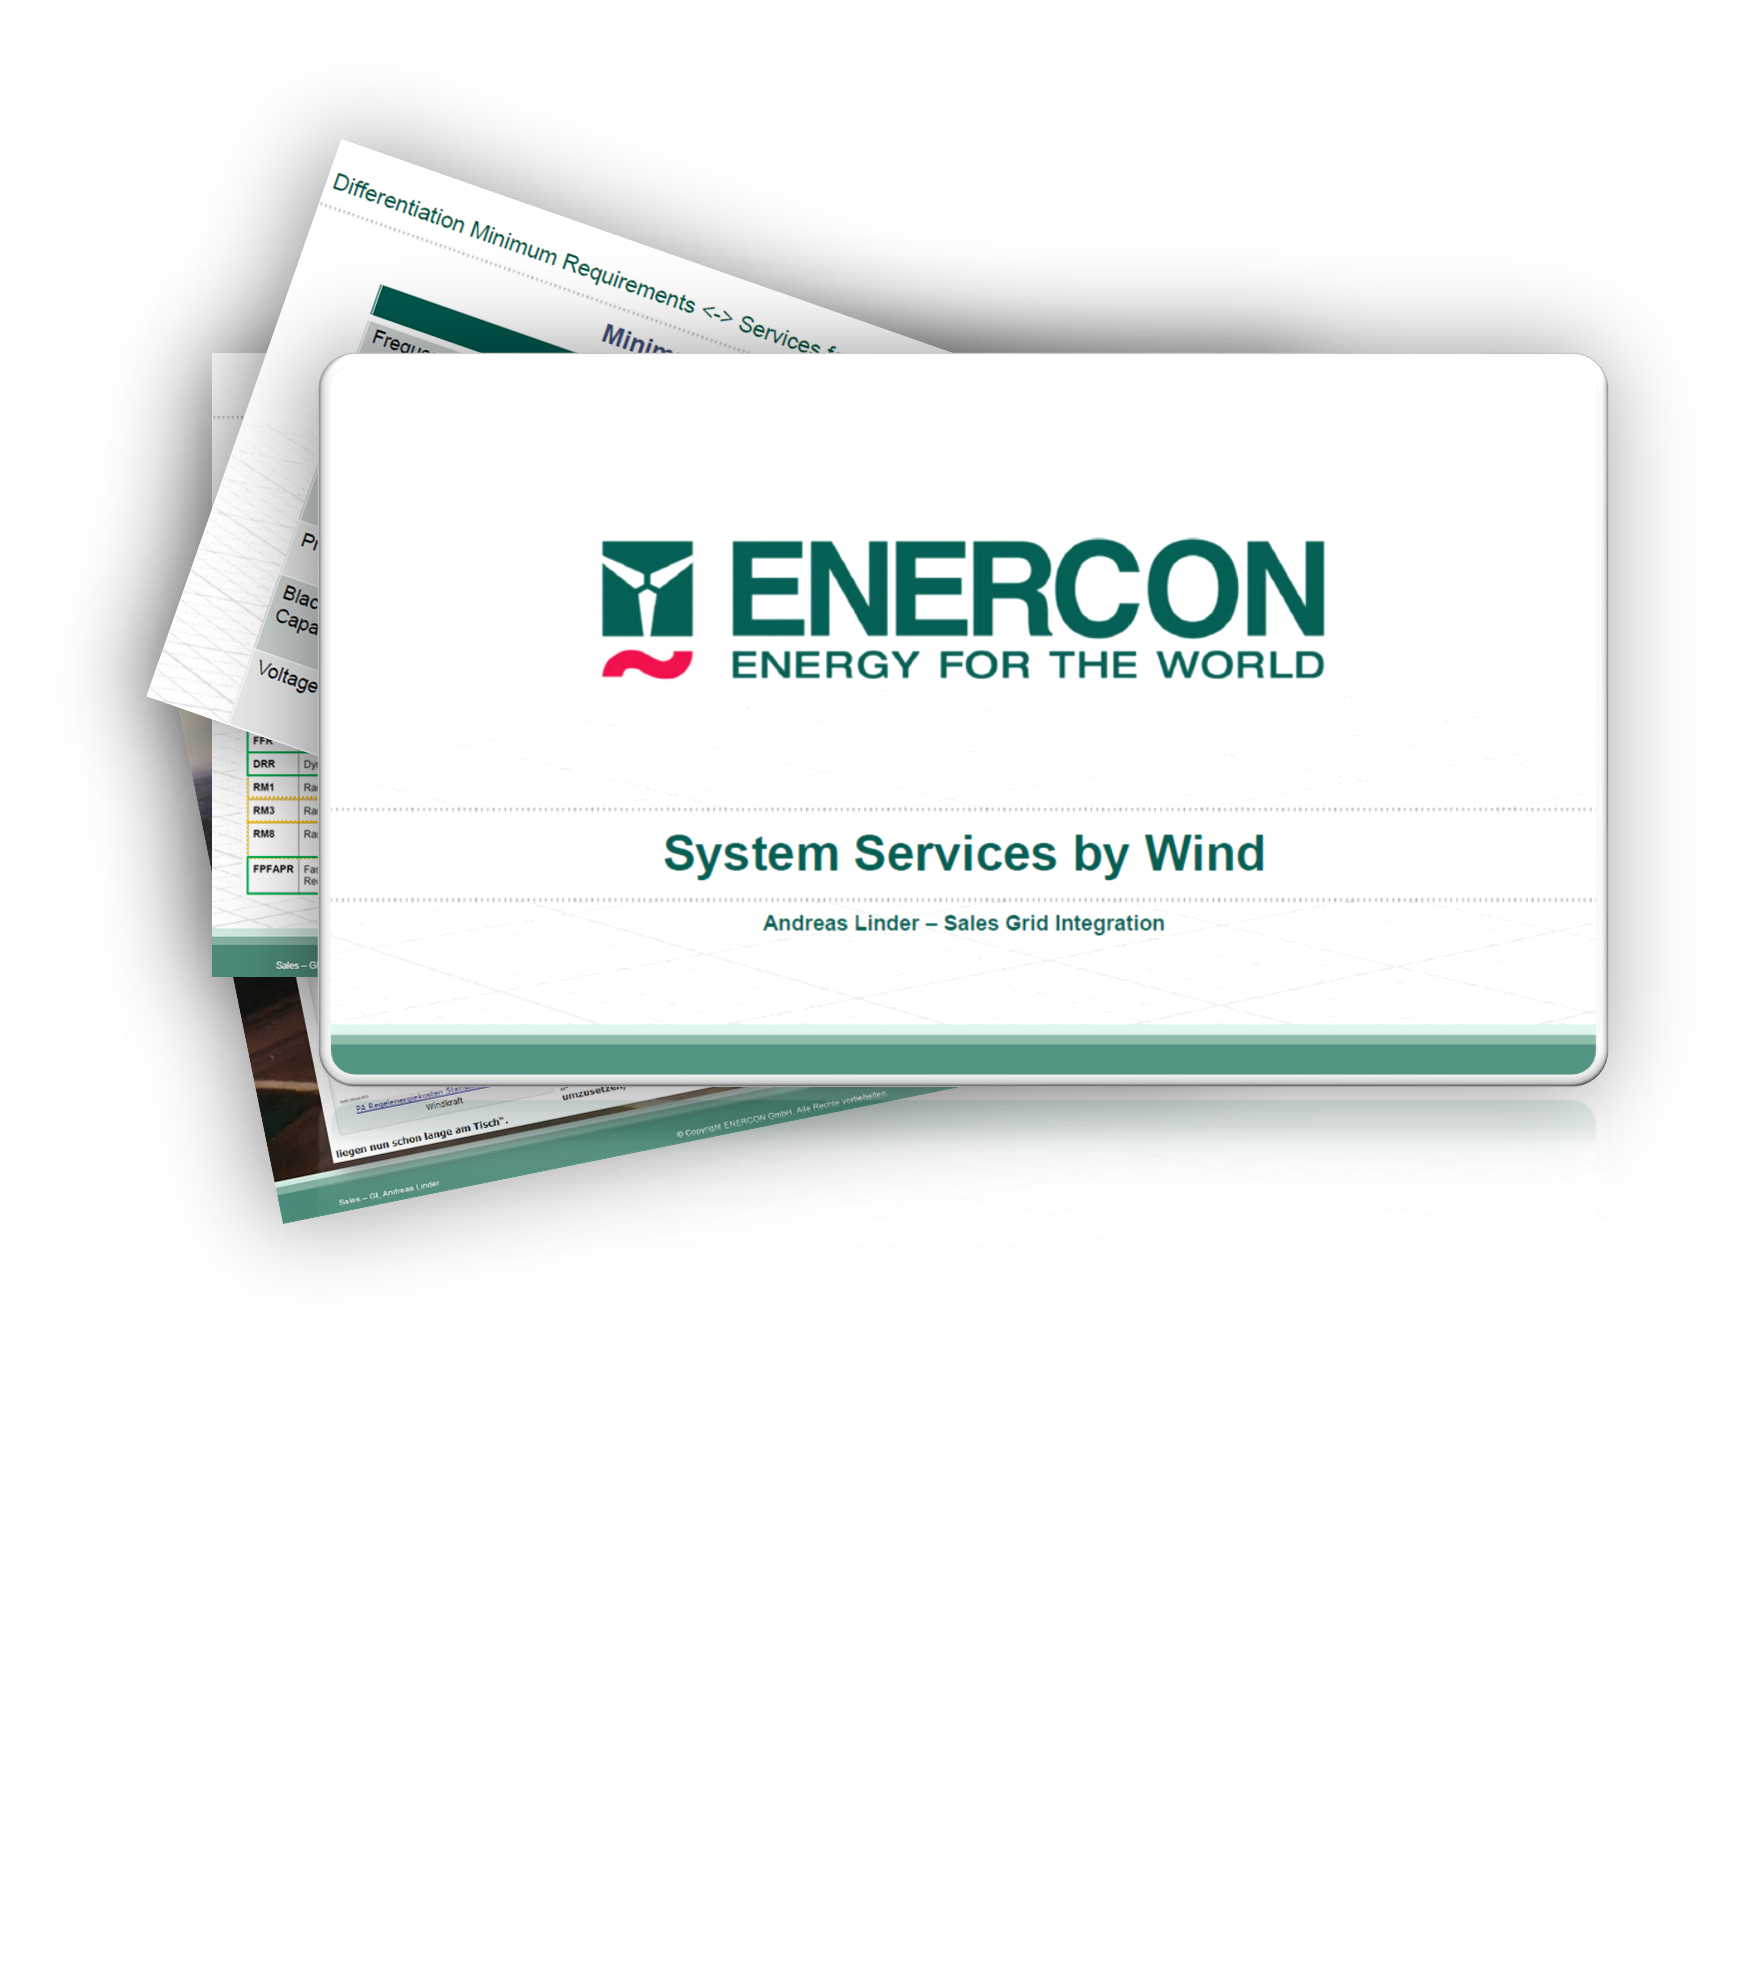 ENERCON - Energy System Change: Era of Feed-in Tariffs is coming to an end